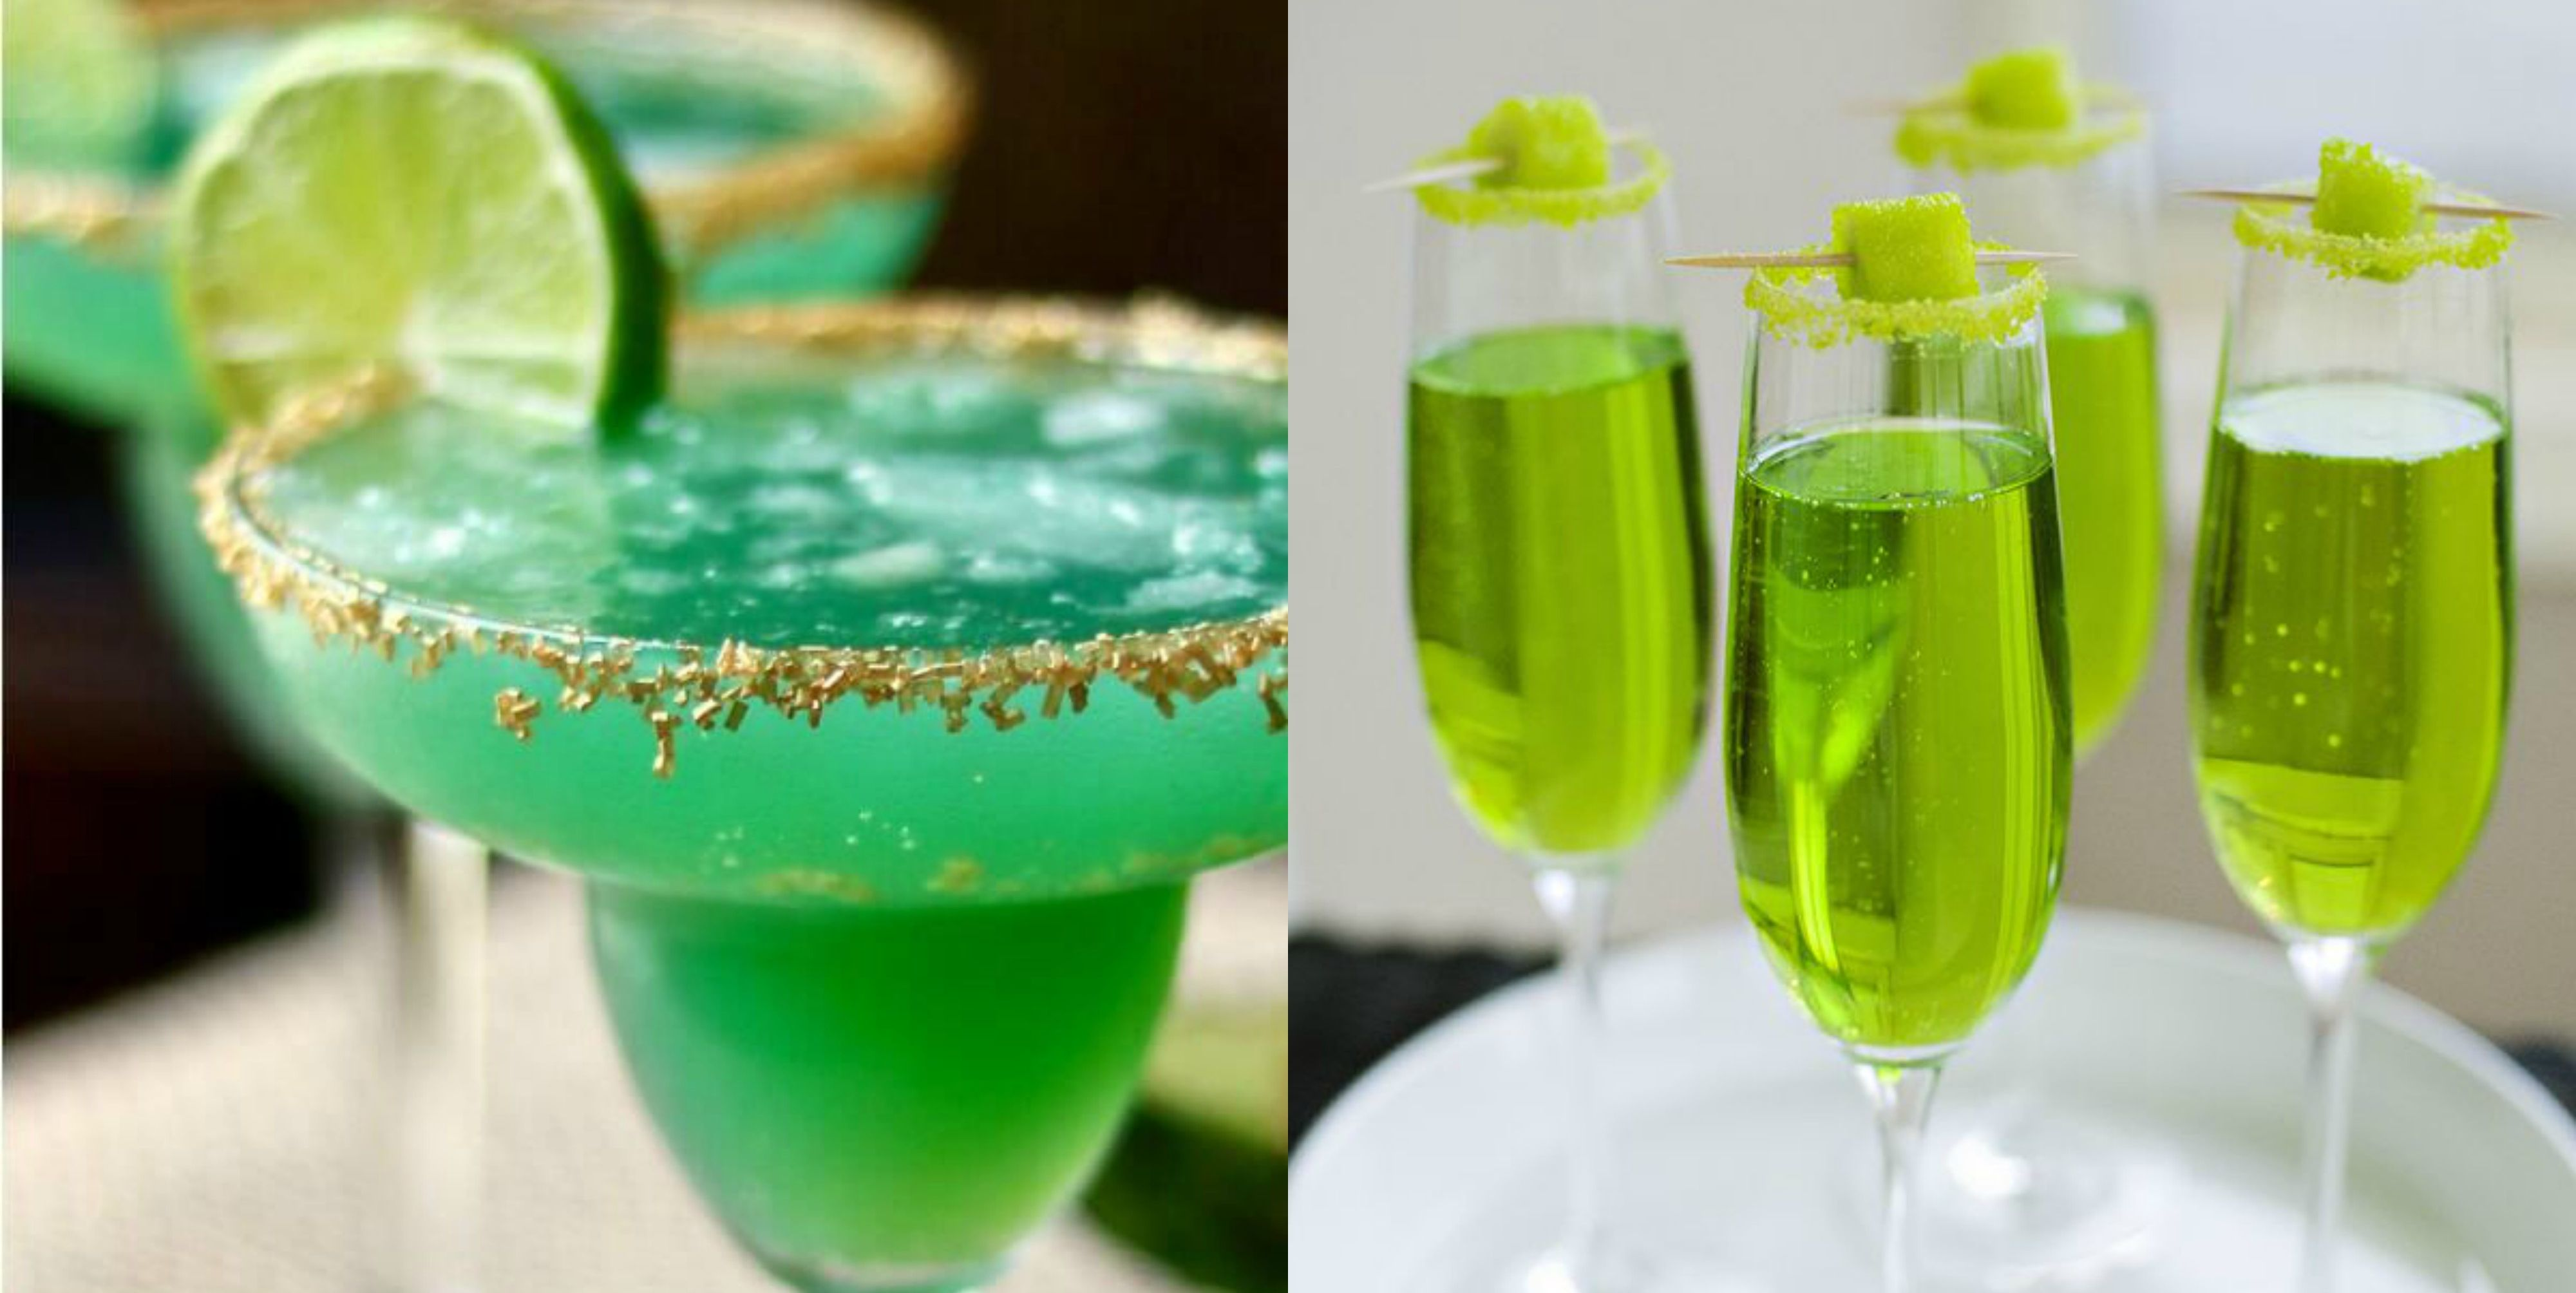 These Festive Green Cocktails Are the Most Fun Way to Celebrate St. Patrick's Day